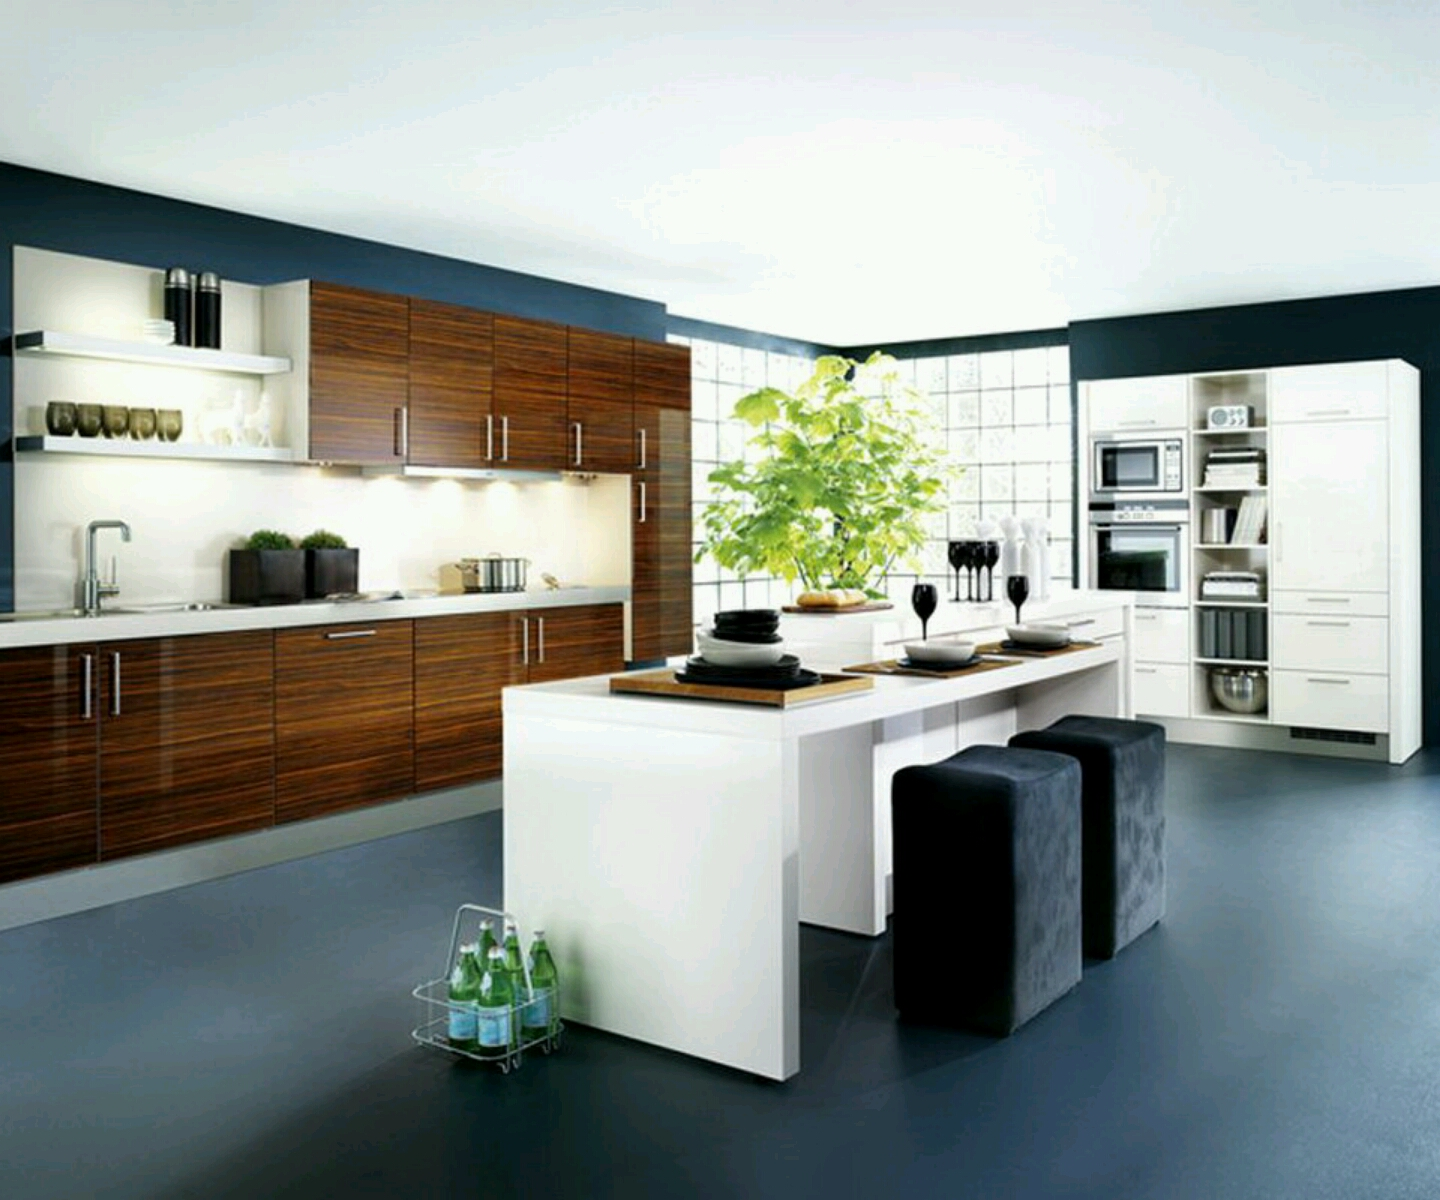 New home designs latest kitchen cabinets designs modern for Kitchen designs new